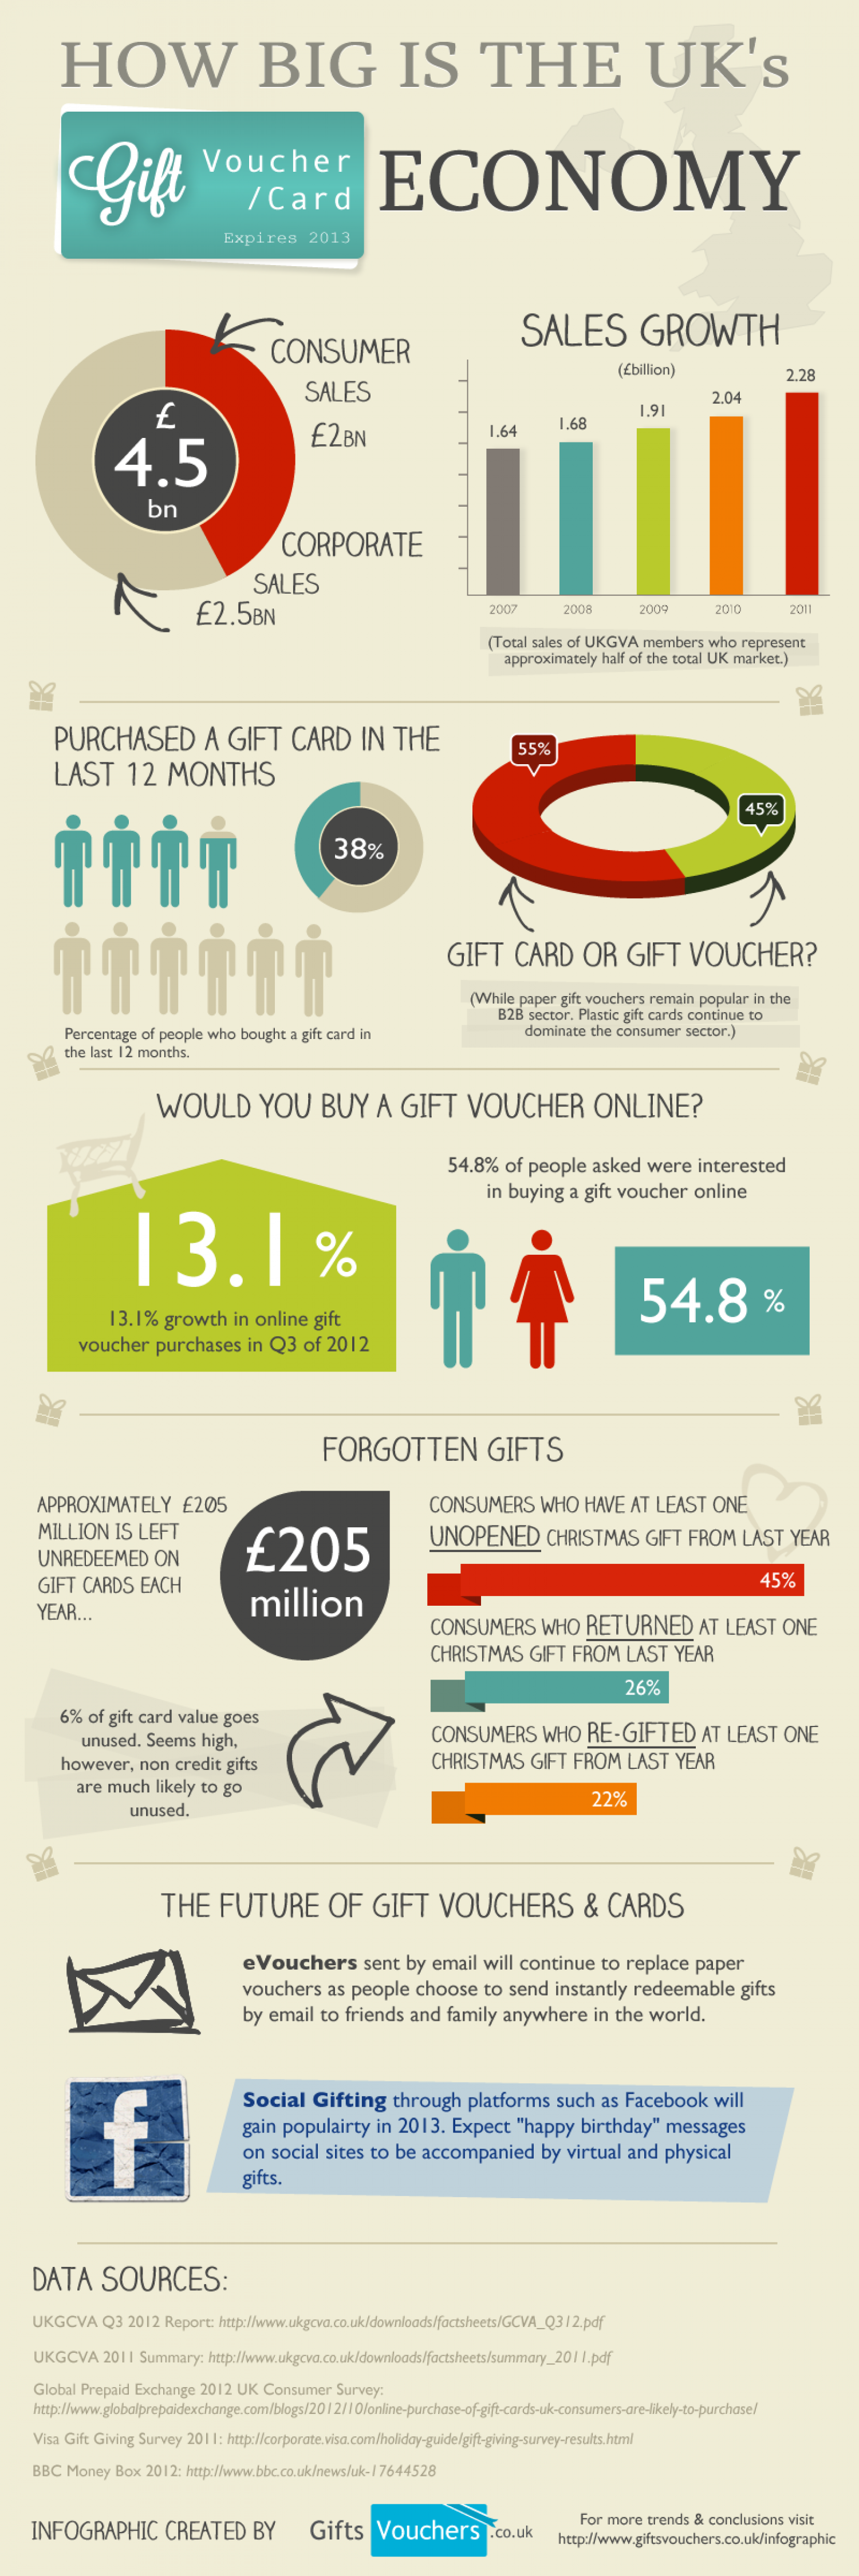 UK Gift Card Economy Infographic